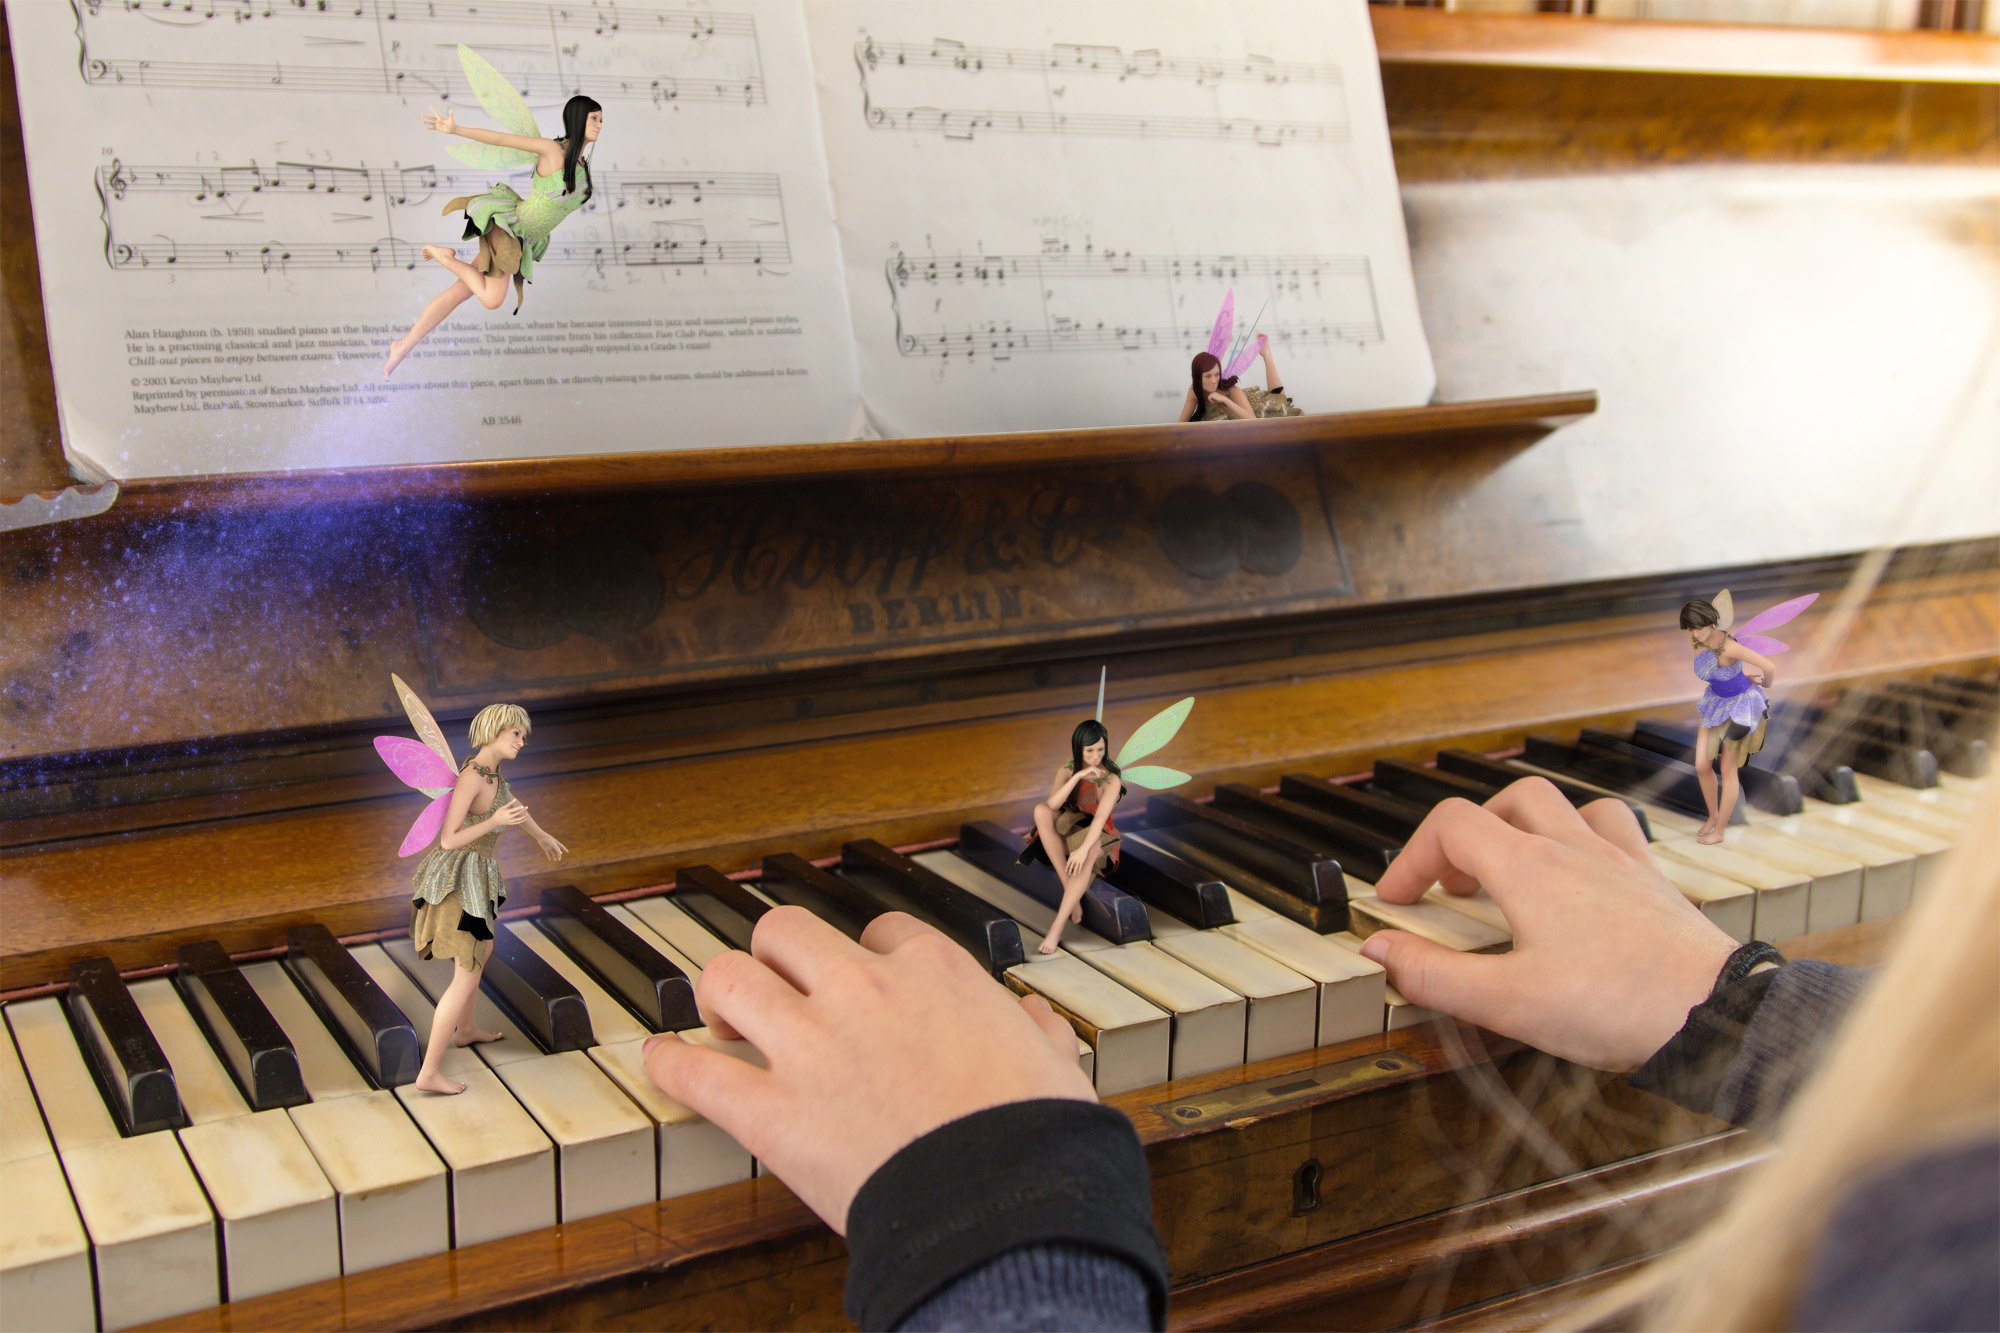 5 fairies dancing around a young girls hand while she learns how to play piano with their guidance